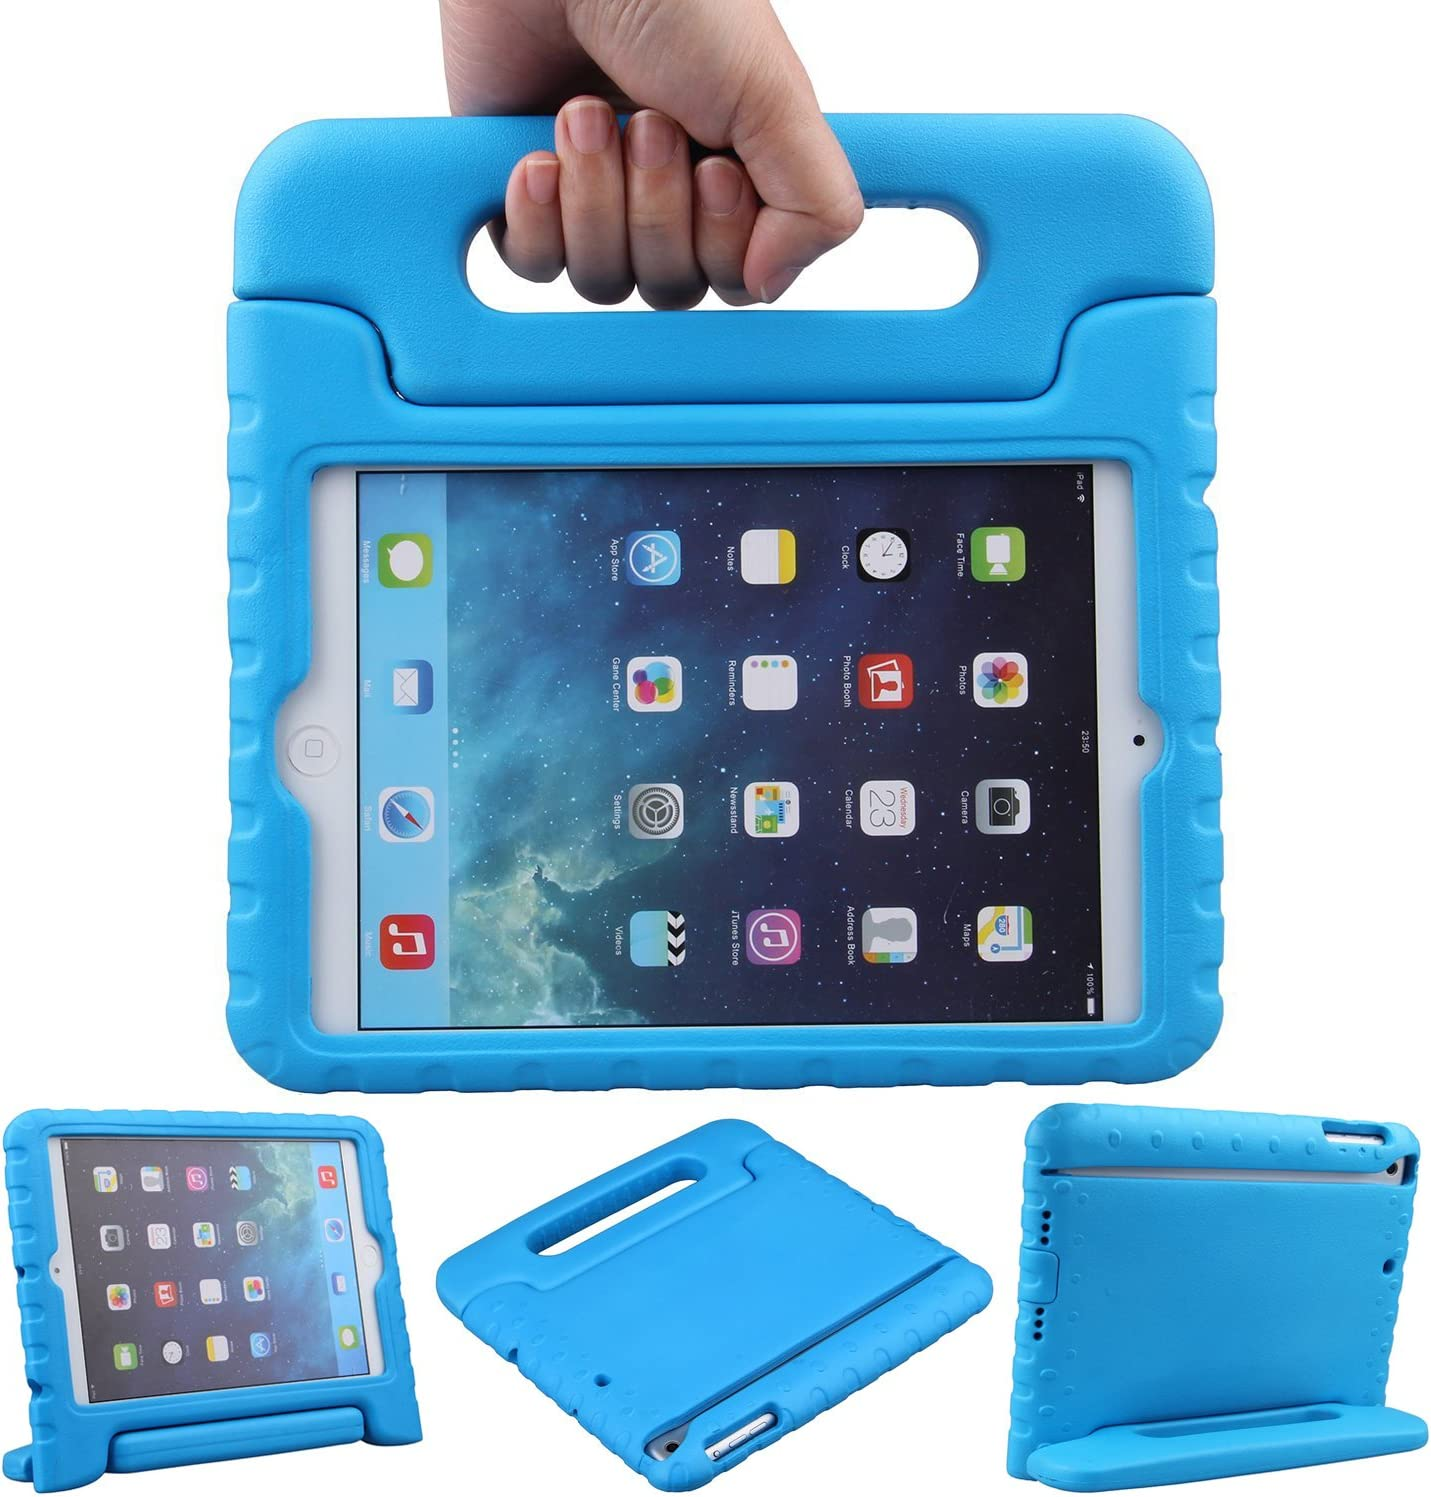 LEFON Kids Case for iPad Mini Shockproof Convertible Handle Light Weight Super Protective Stand Cover Case for Apple iPad Mini 3rd Gen/Mini 2 / Mini 1 (Blue)